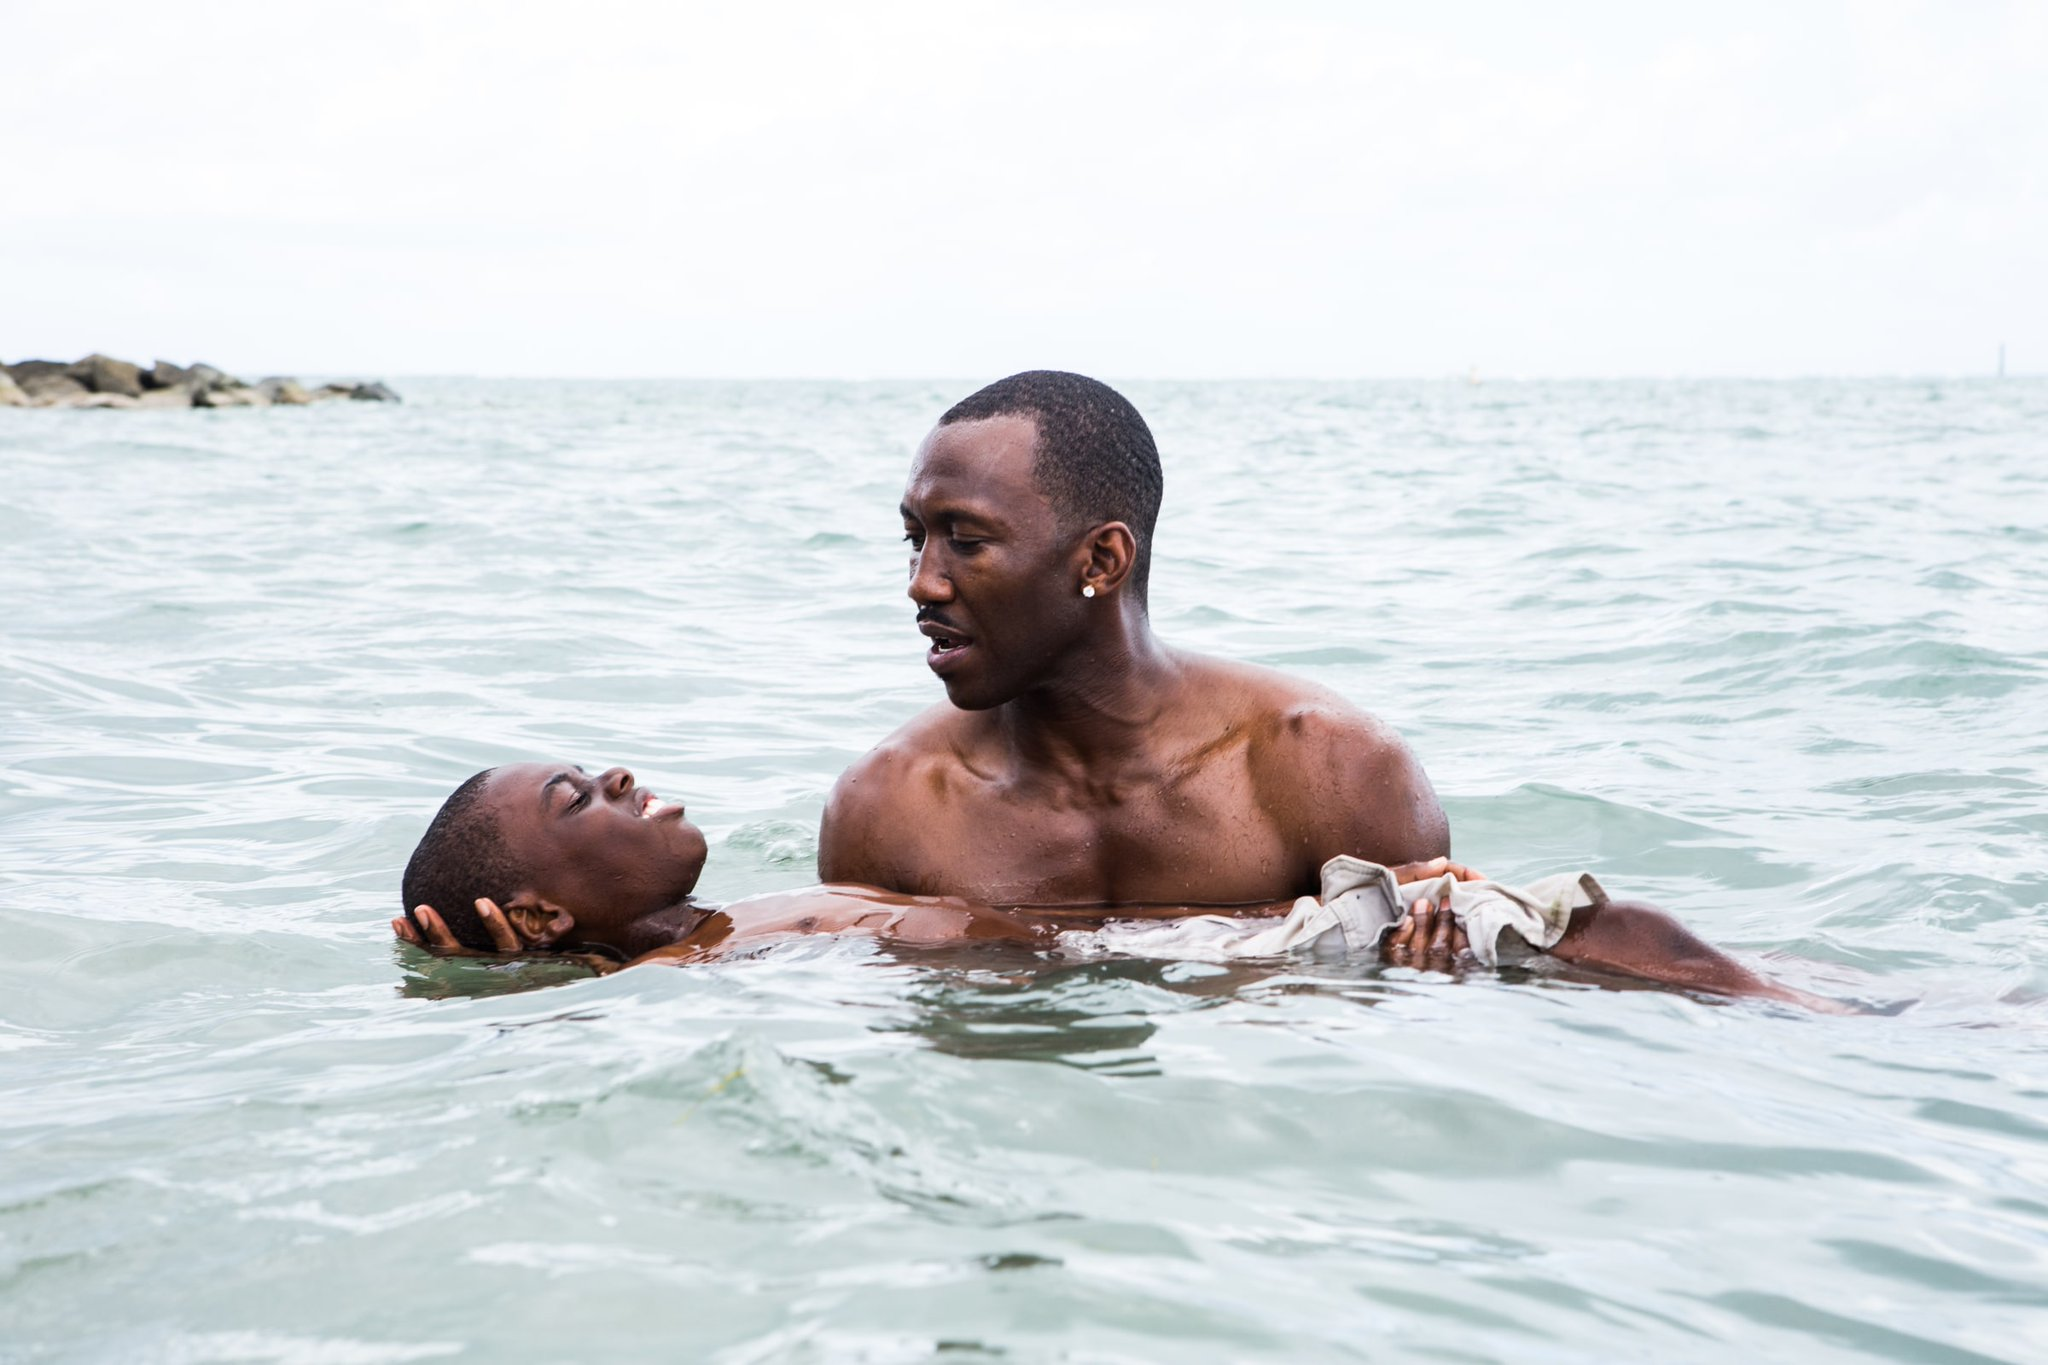 Photo from A24 Three phases · Told in three chapters, Moonlight tells the story of a black man struggling with his sexuality and identity while growing up in Miami. The film has been unanimously acclaimed by critics since its premiere.